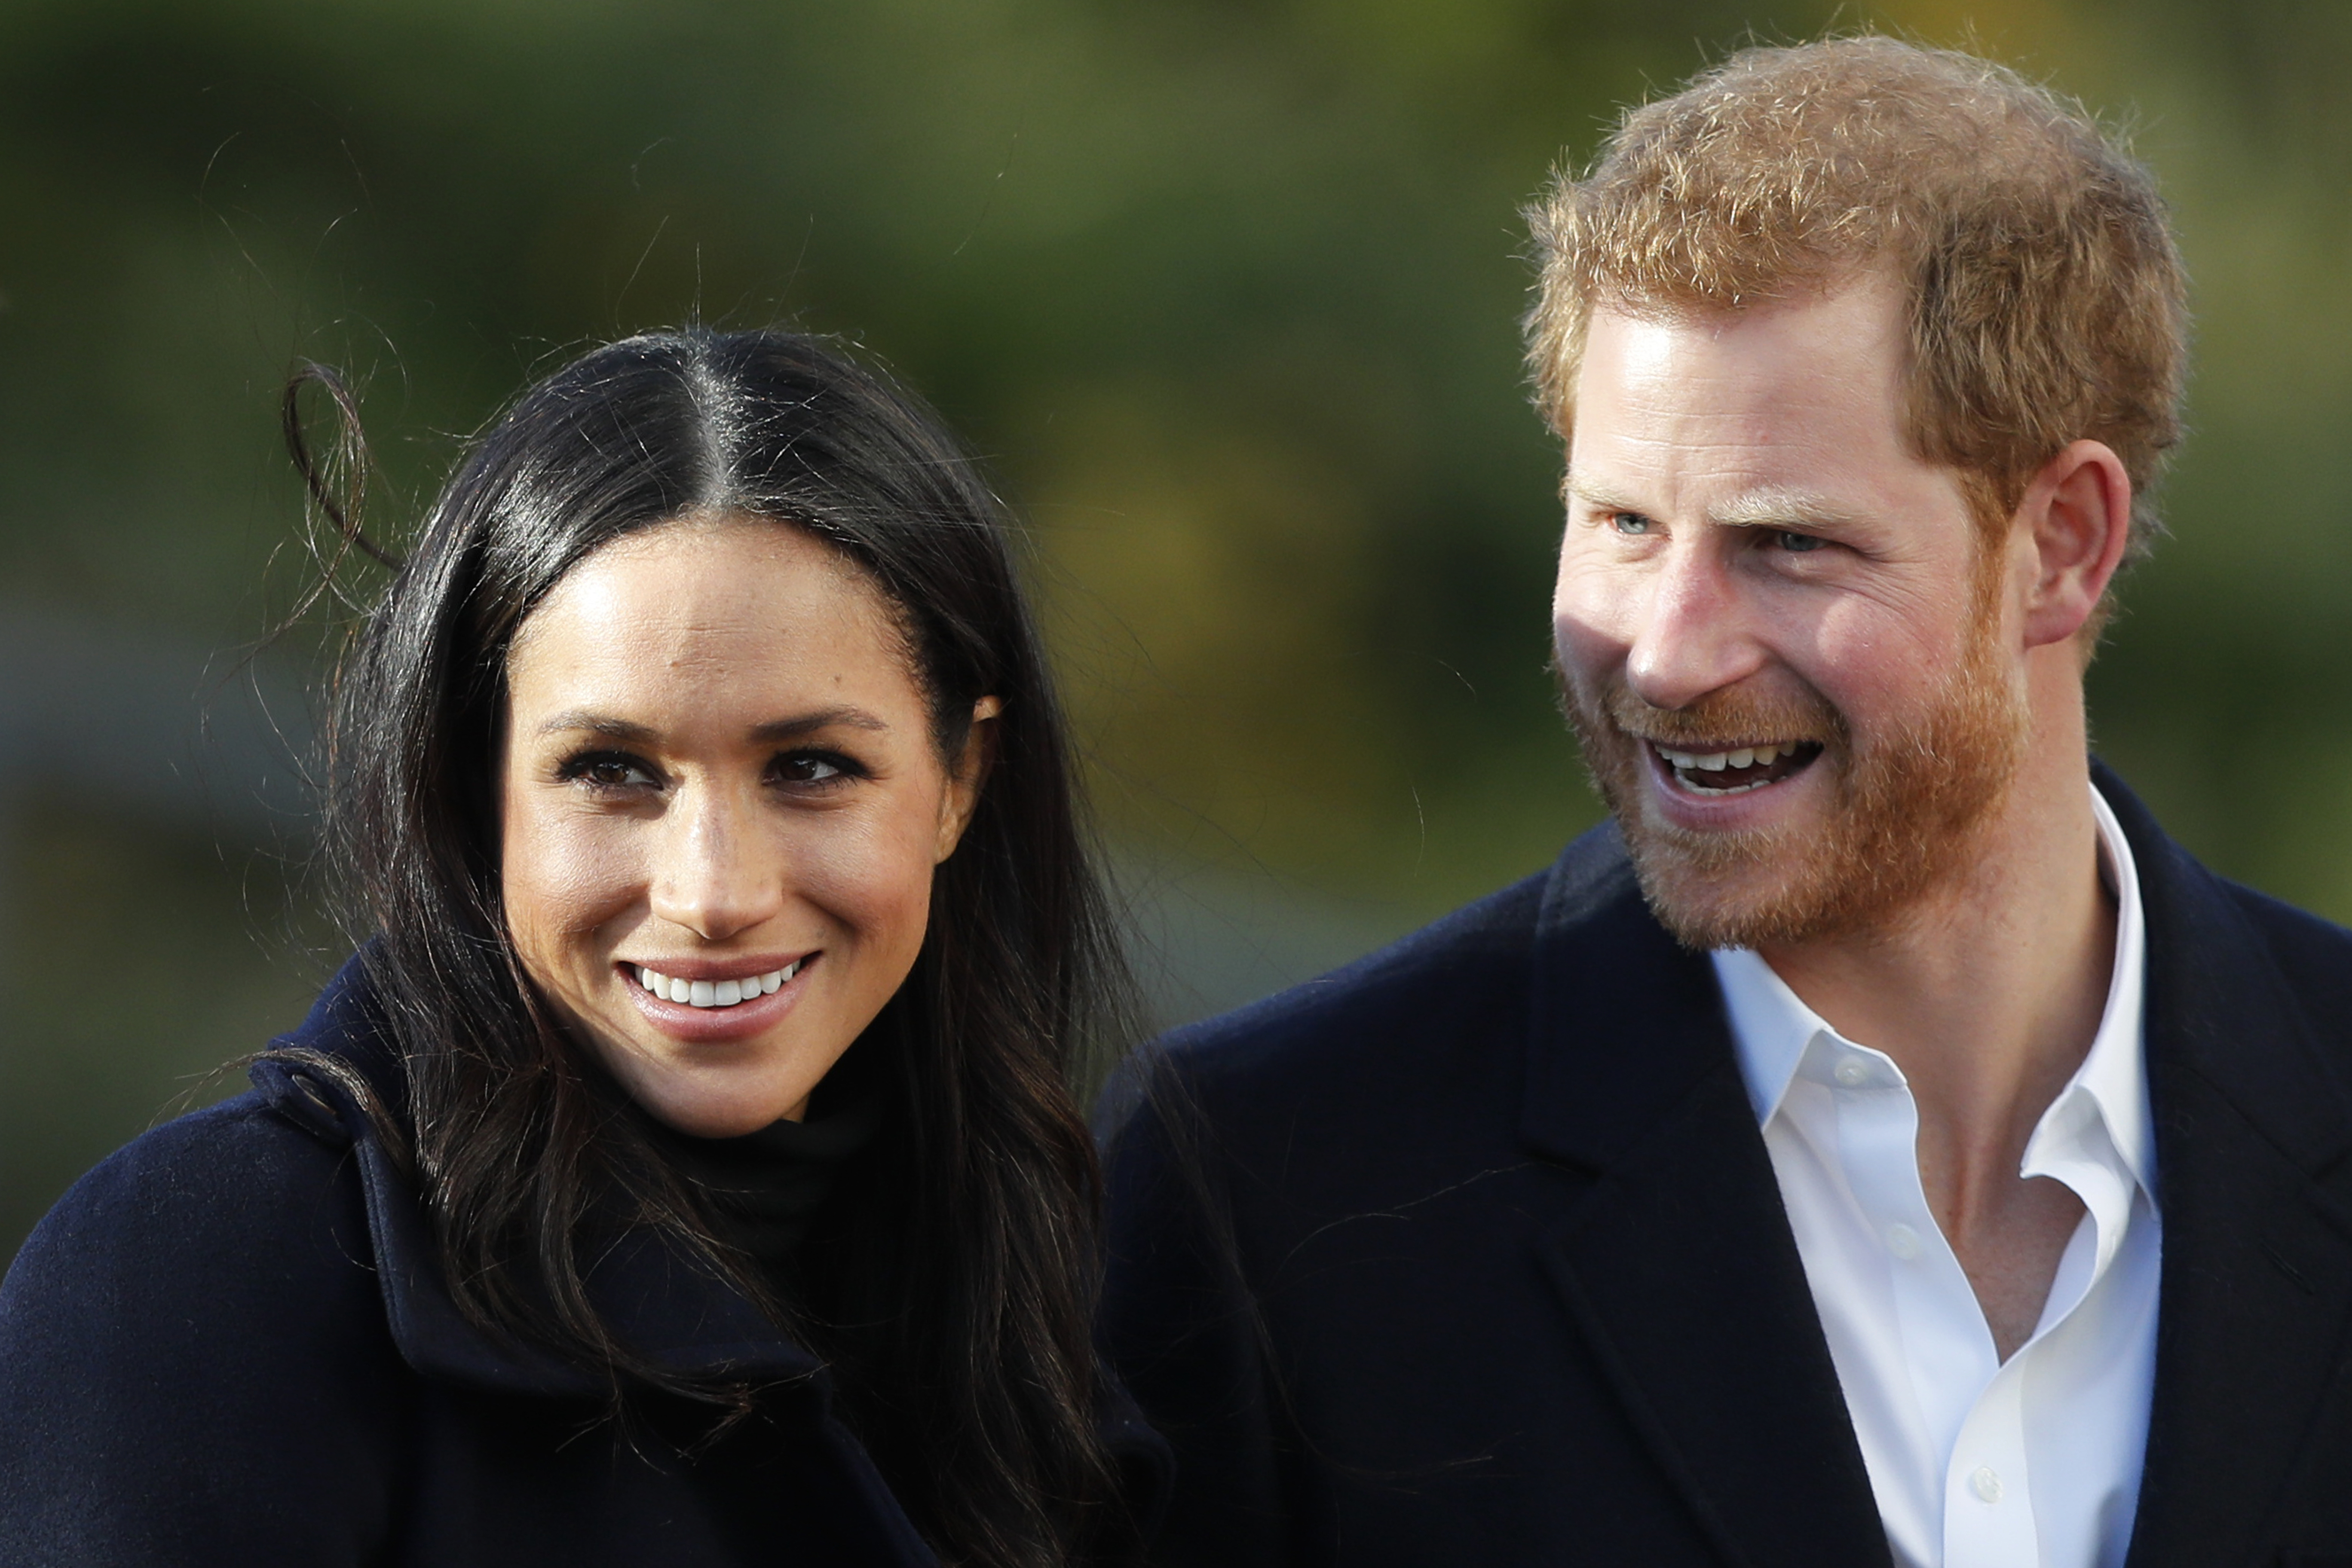 In this Dec. 1, 2017 file photo, Britain's Prince Harry and his fiancee Meghan Markle arrive at Nottingham Academy in Nottingham, England.